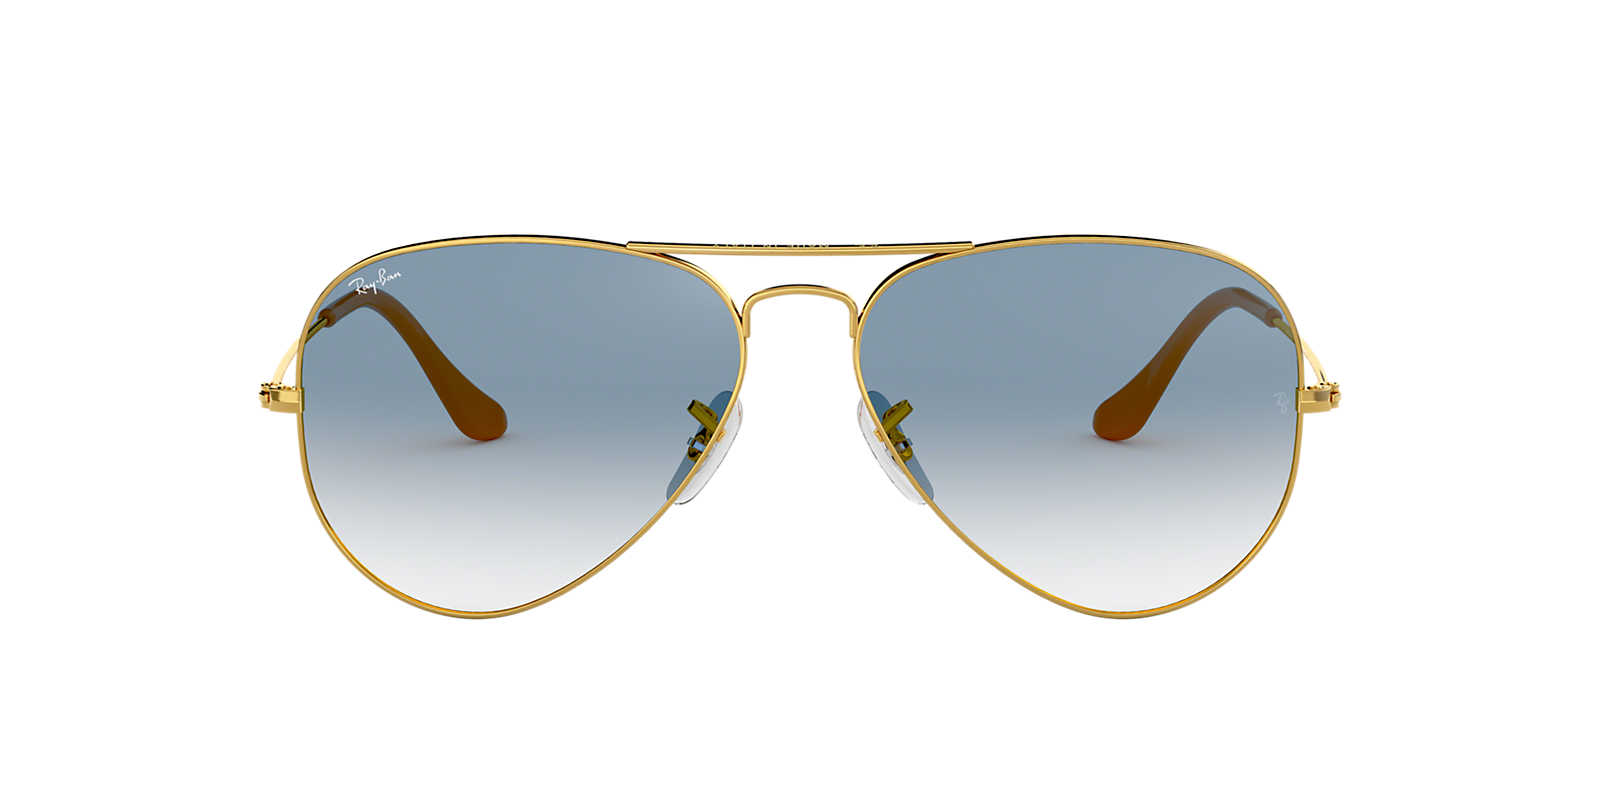 rb 3025 rayban  Ray-Ban RB3025 62 ORIGINAL AVIATOR 62 Blue \u0026 Gold Sunglasses ...